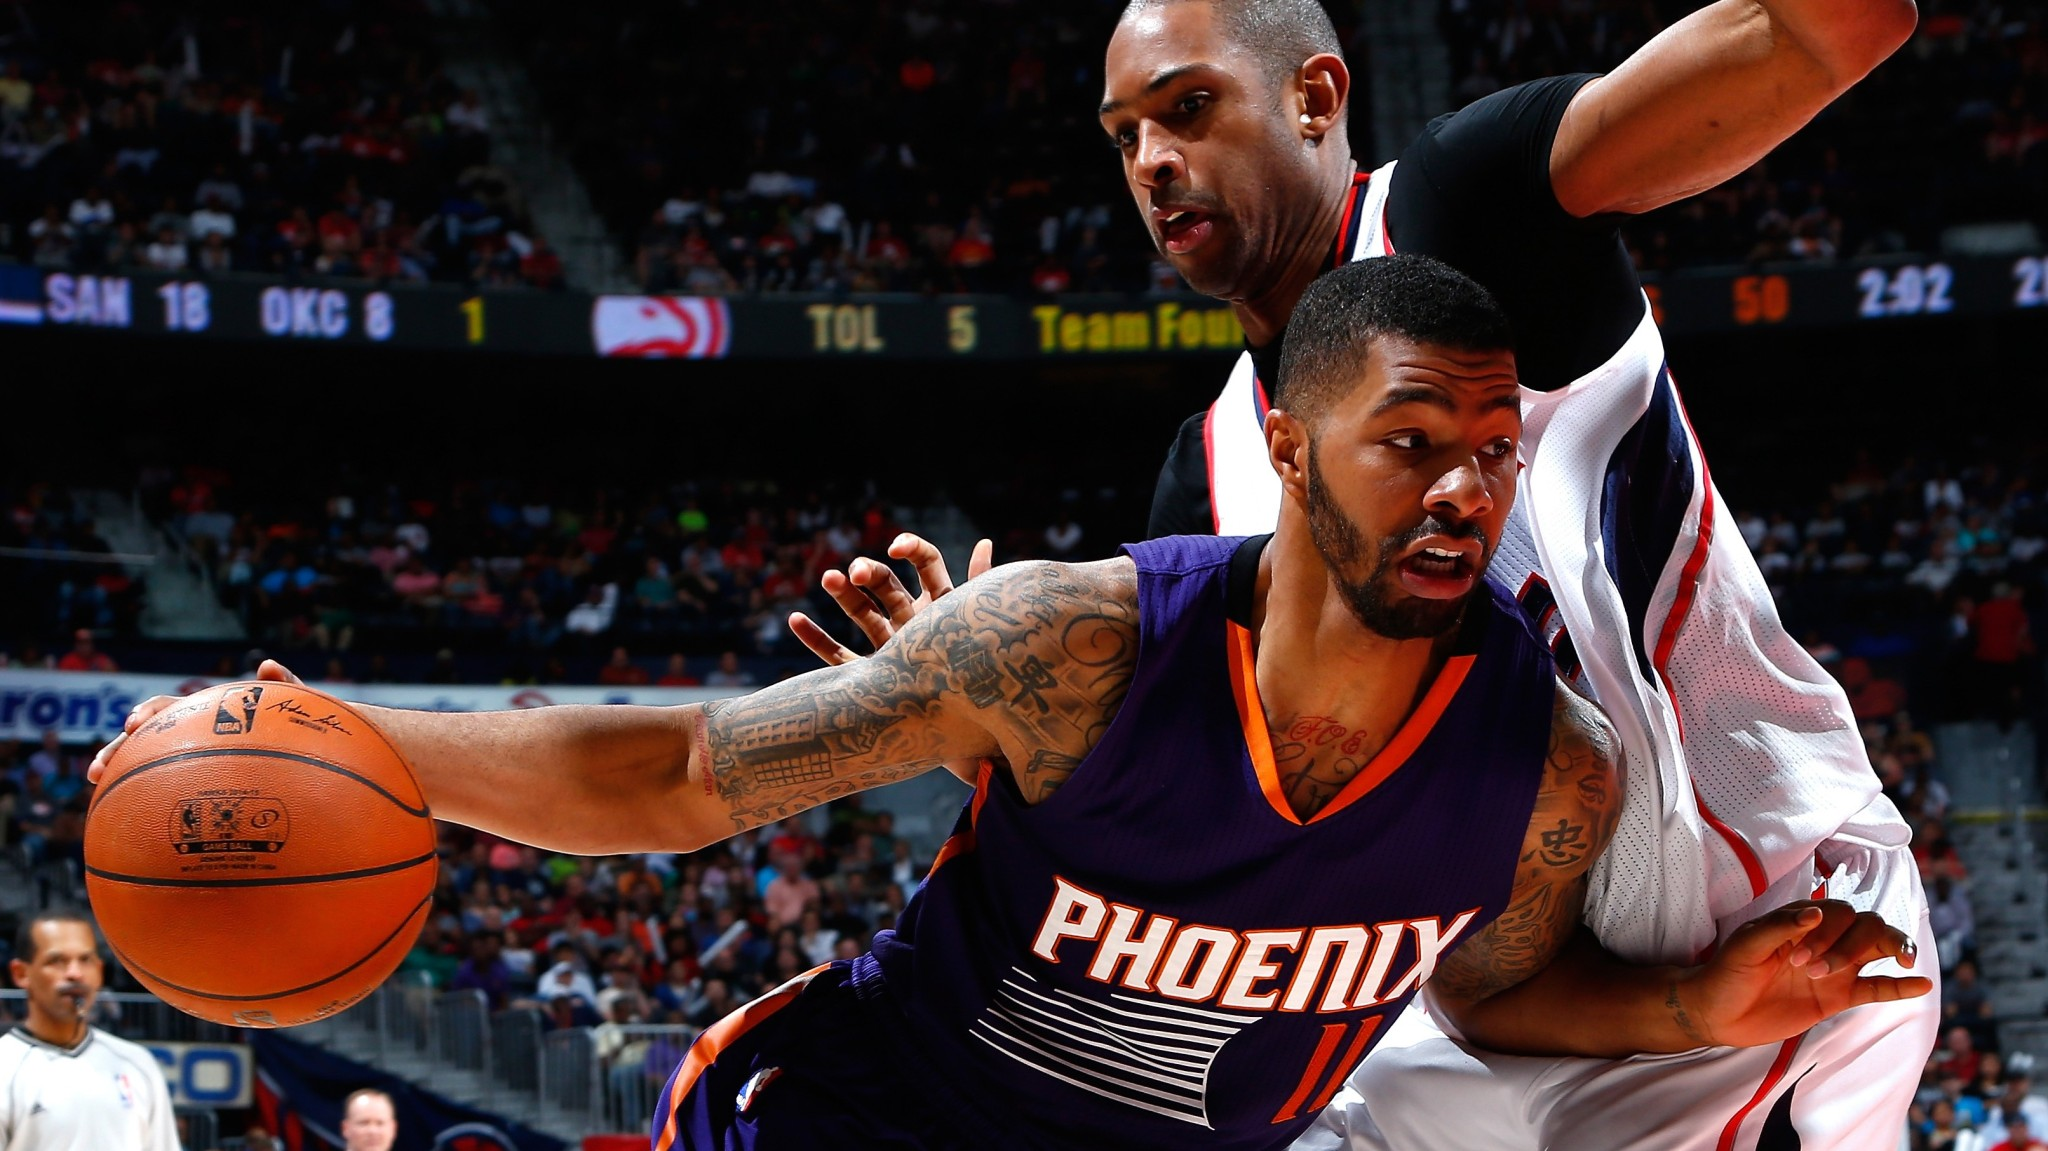 The Curious Case Of Markieff Morris